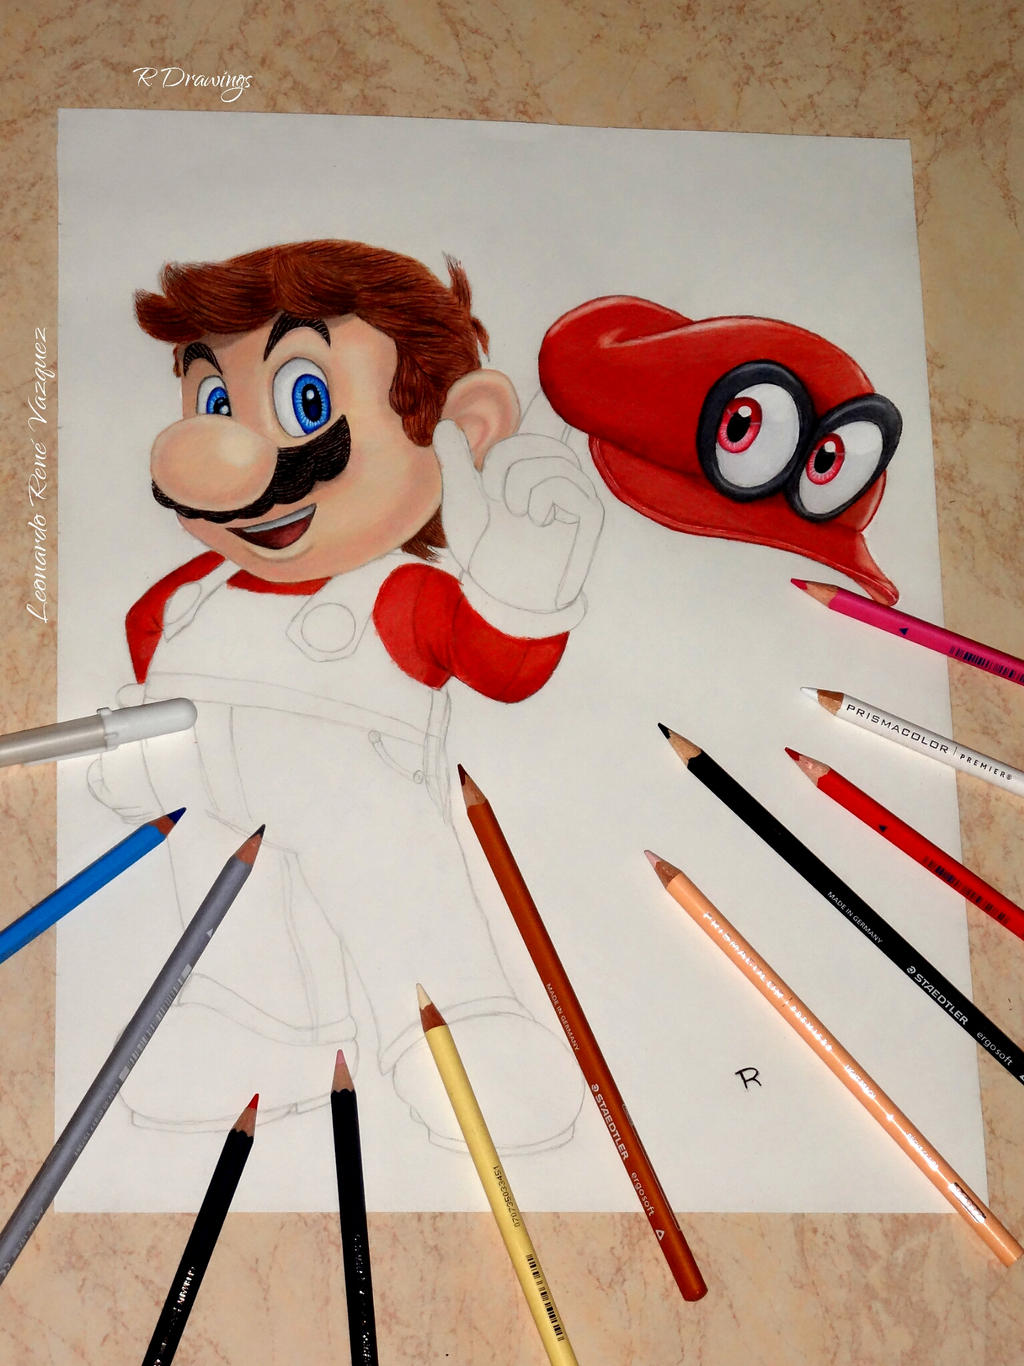 Mario Drawing Process By Rdrawings25 On Deviantart